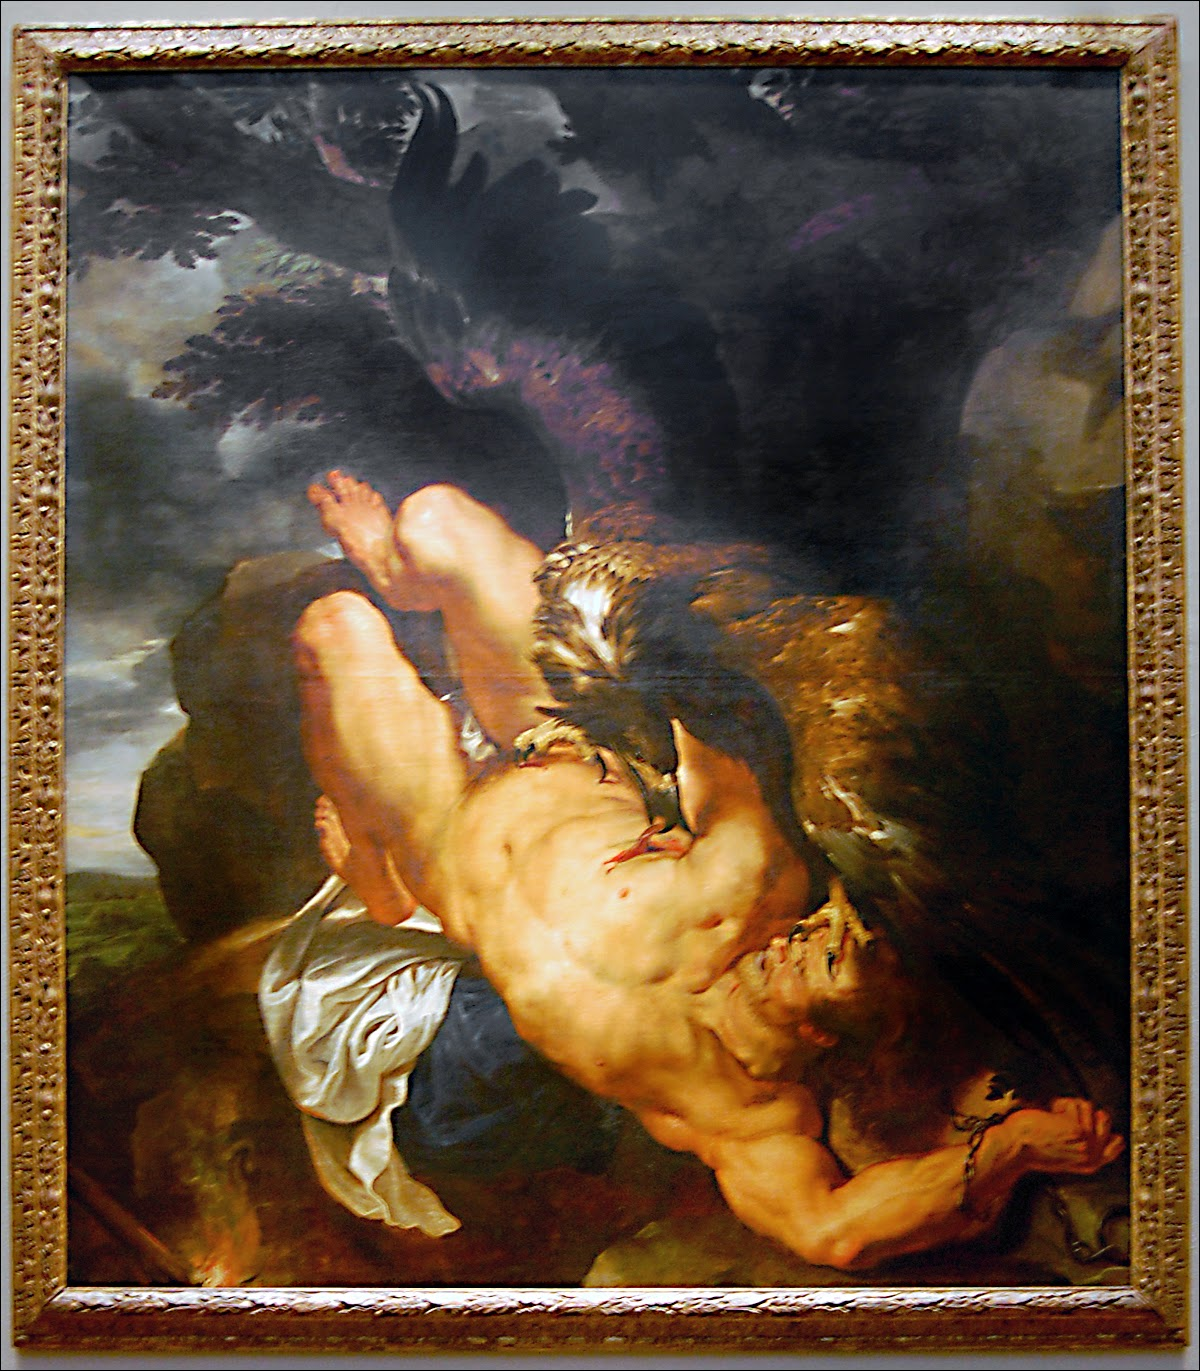 prometheus bound rubens essays Rumored buzz on peter paul rubens prometheus bound essays, junior achievement of new york business plan competition, 7 roles of the president essay exposed.